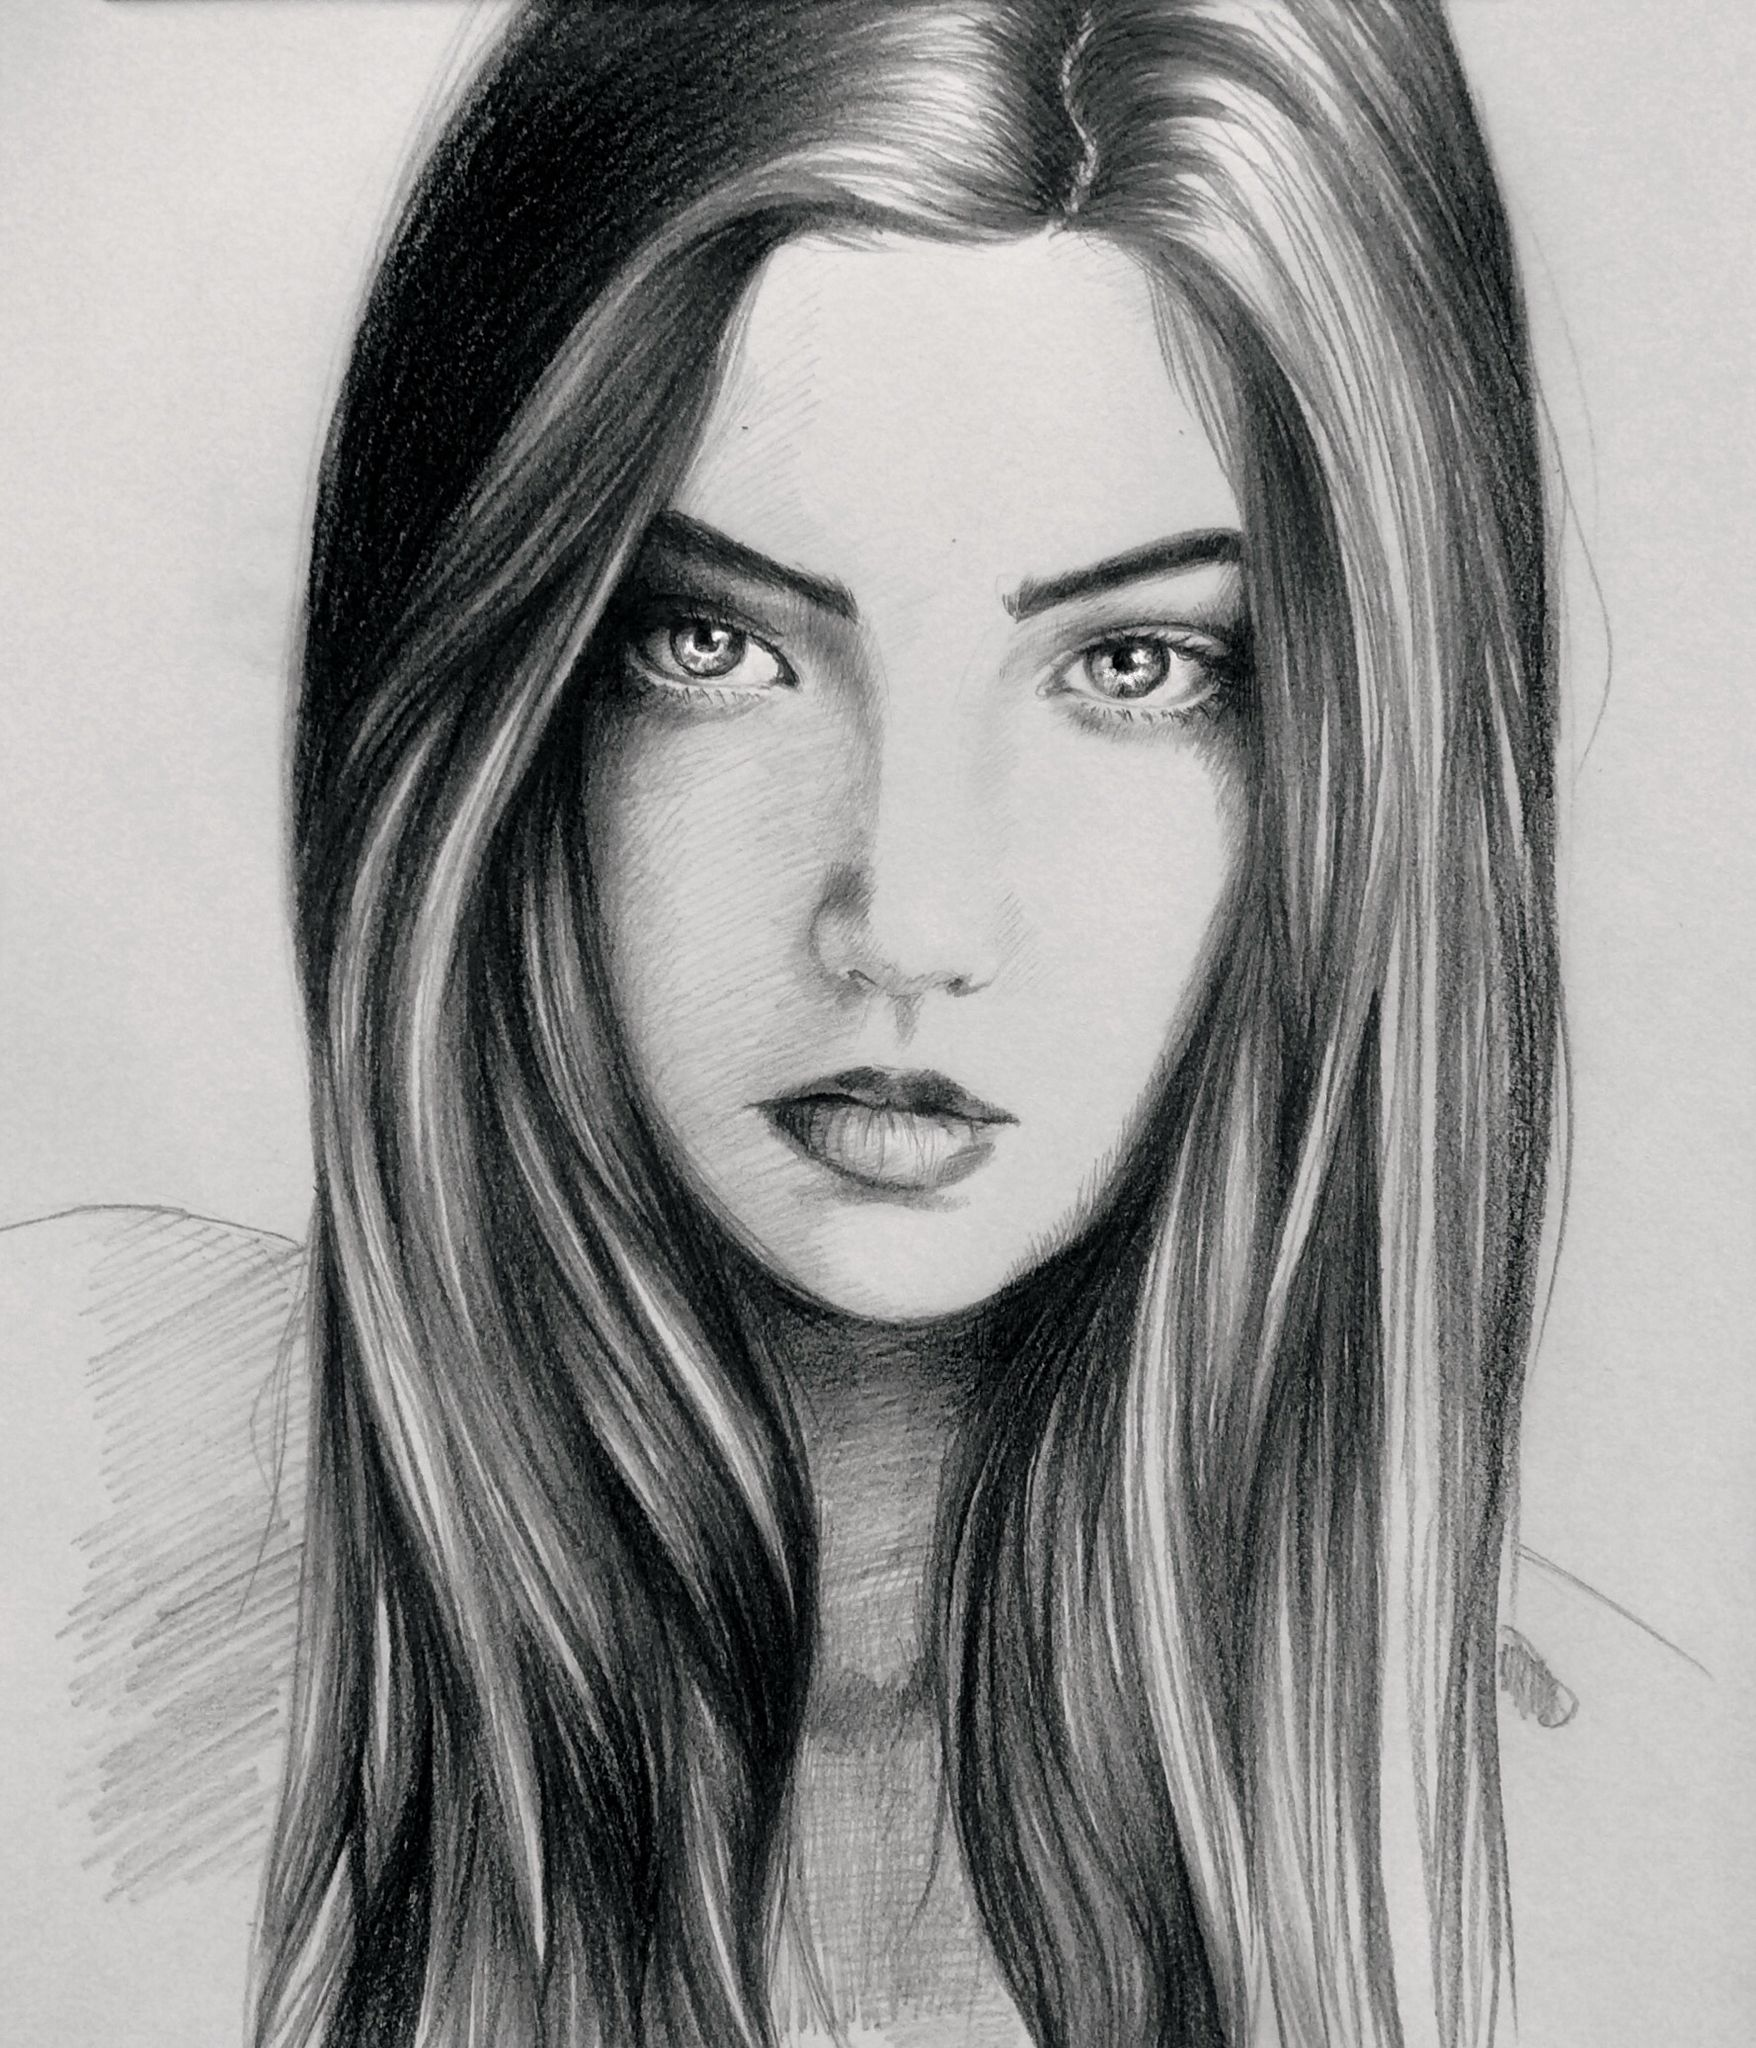 Portrait Sketch Of A Beautiful Girl #Art #Sketch #Drawing #Beautiful